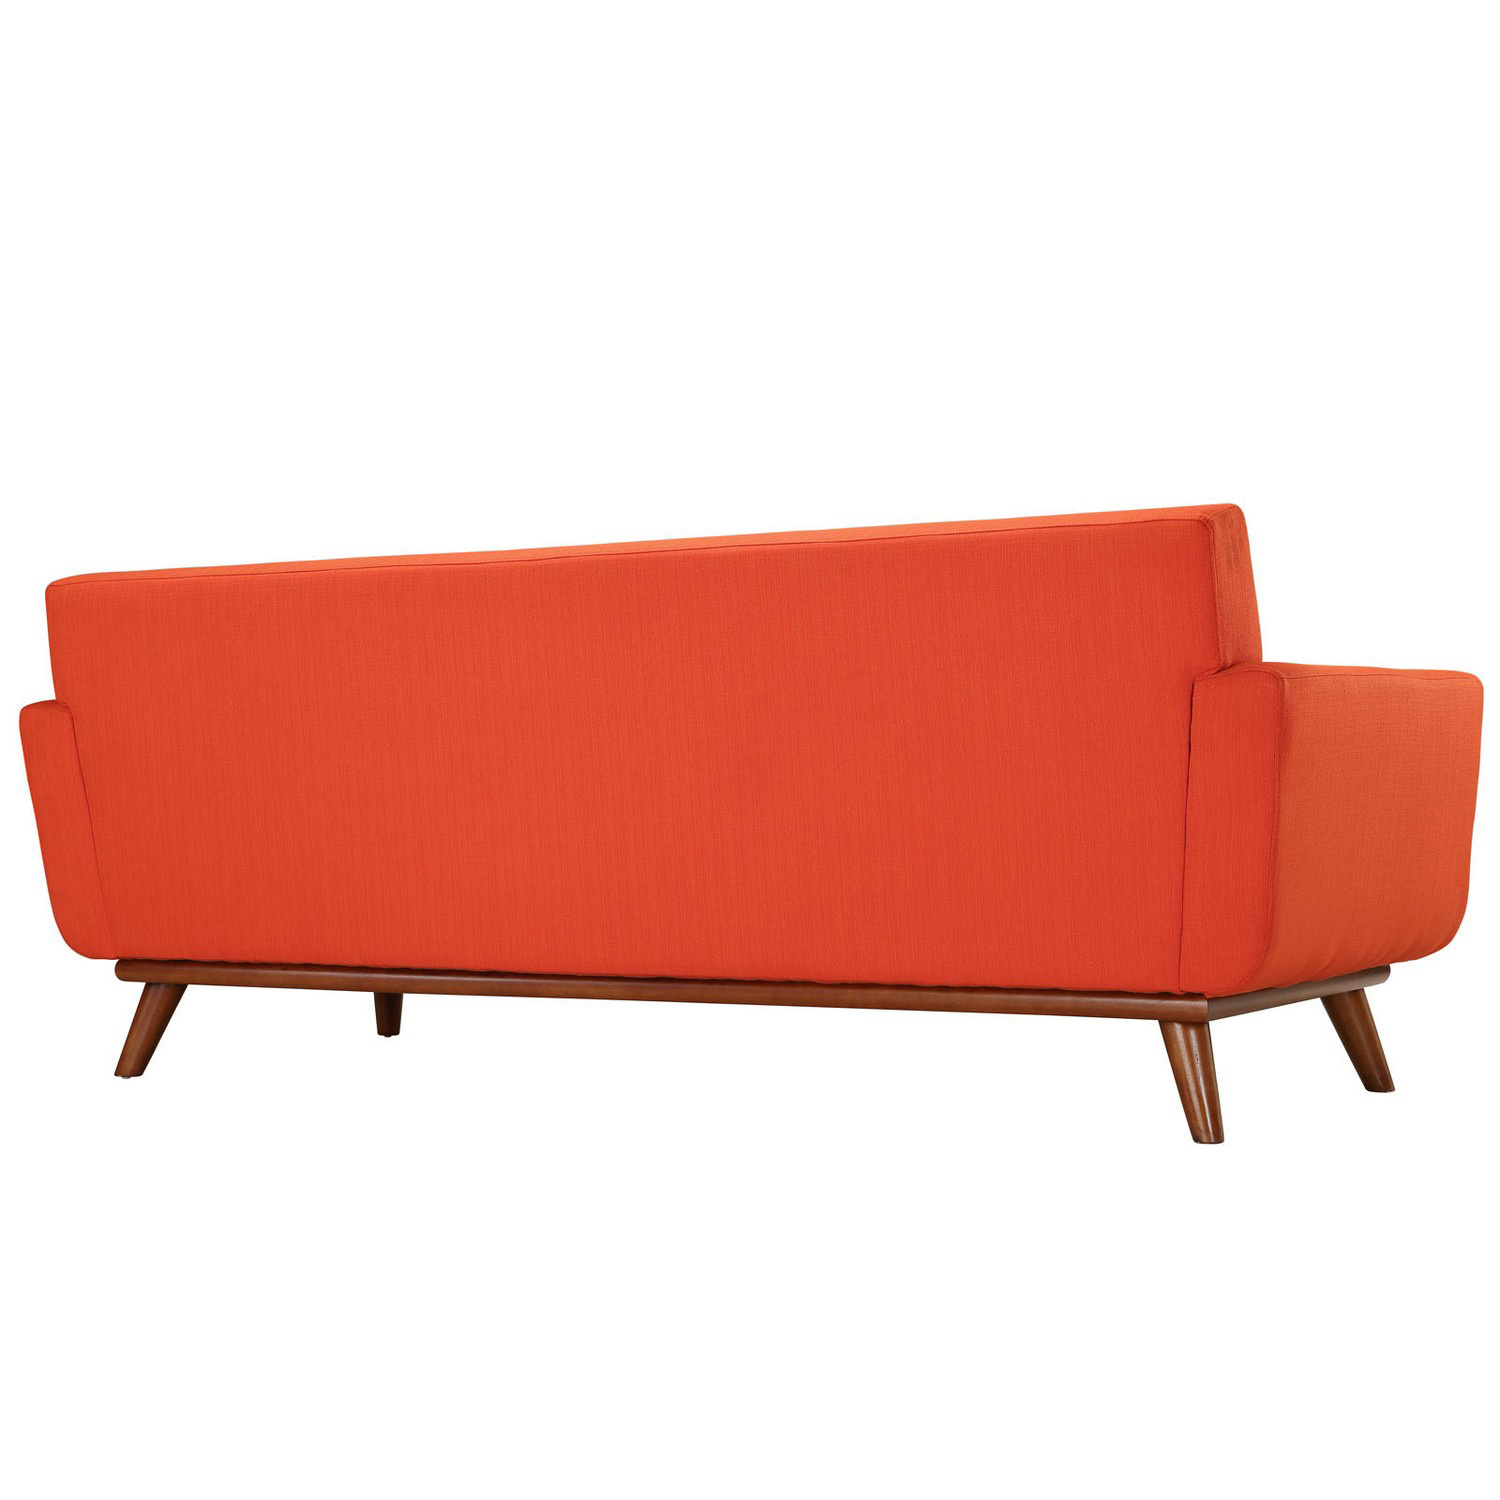 Modway Engage Upholstered Sofa - Atomic Red